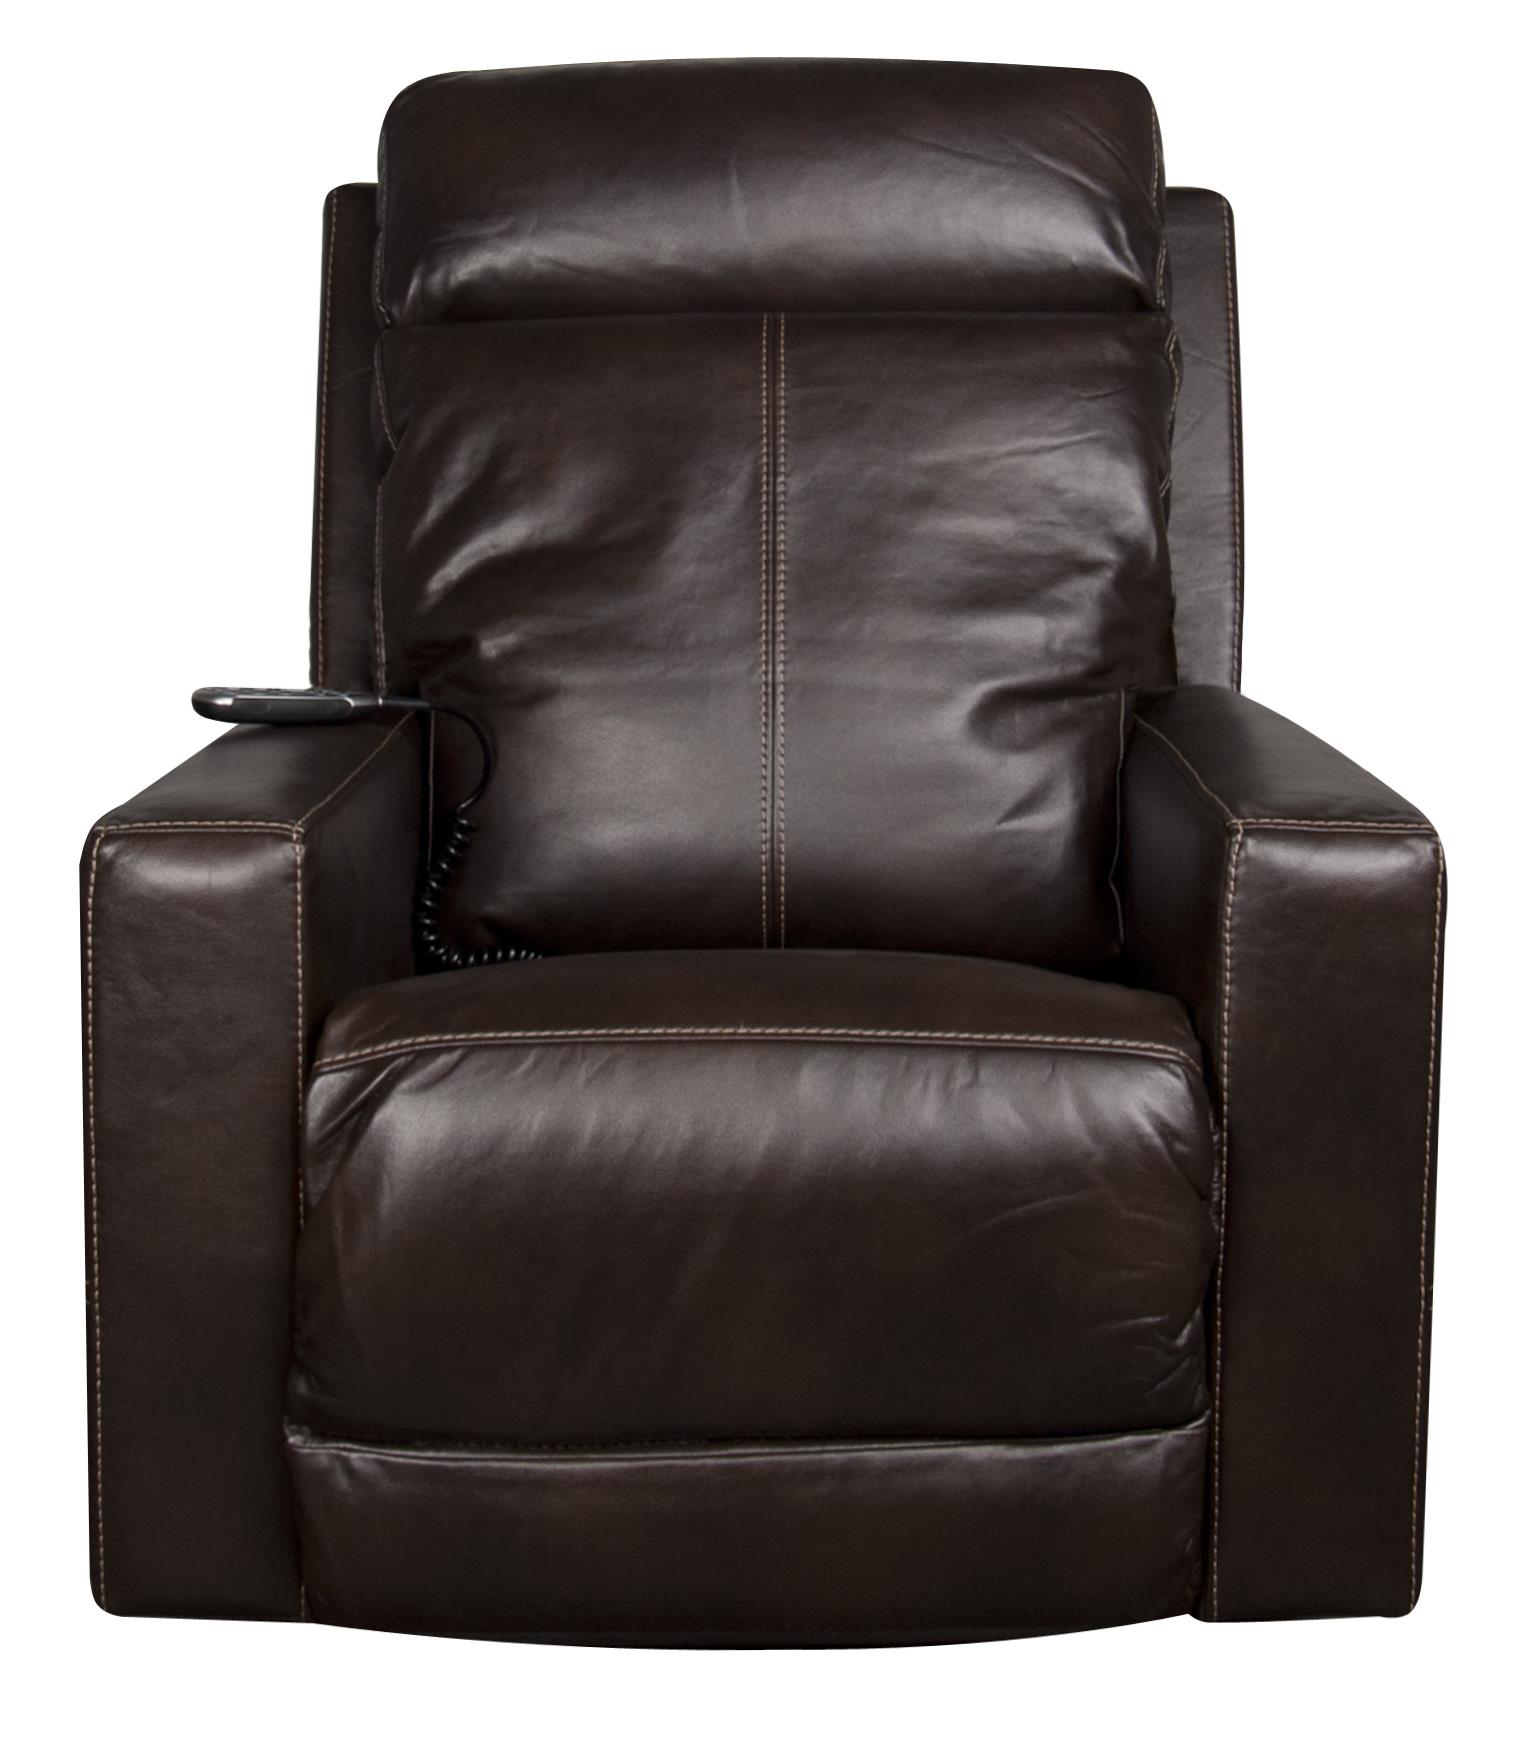 La-Z-Boy Jax Jax Power Rocker Recliner - Item Number: 844627433